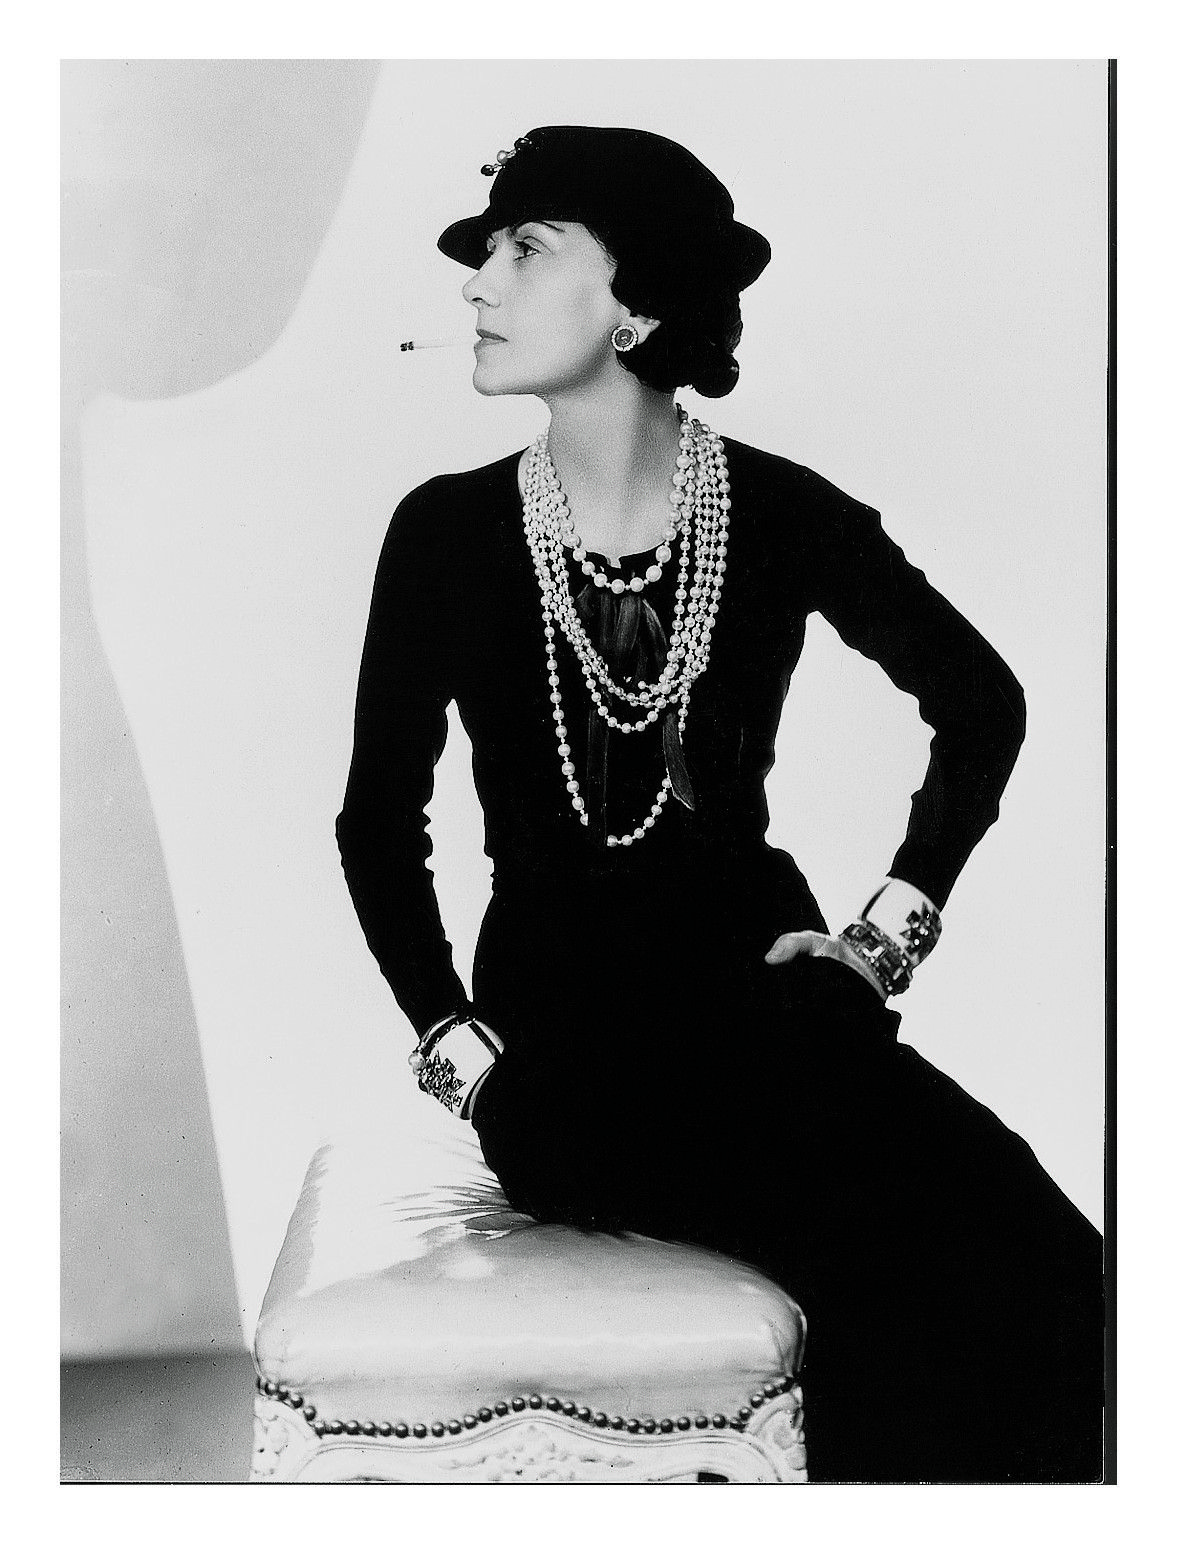 bf4639a95d699b It Girl Then: French fashion designer and founder of the Chanel brand,  Gabrielle